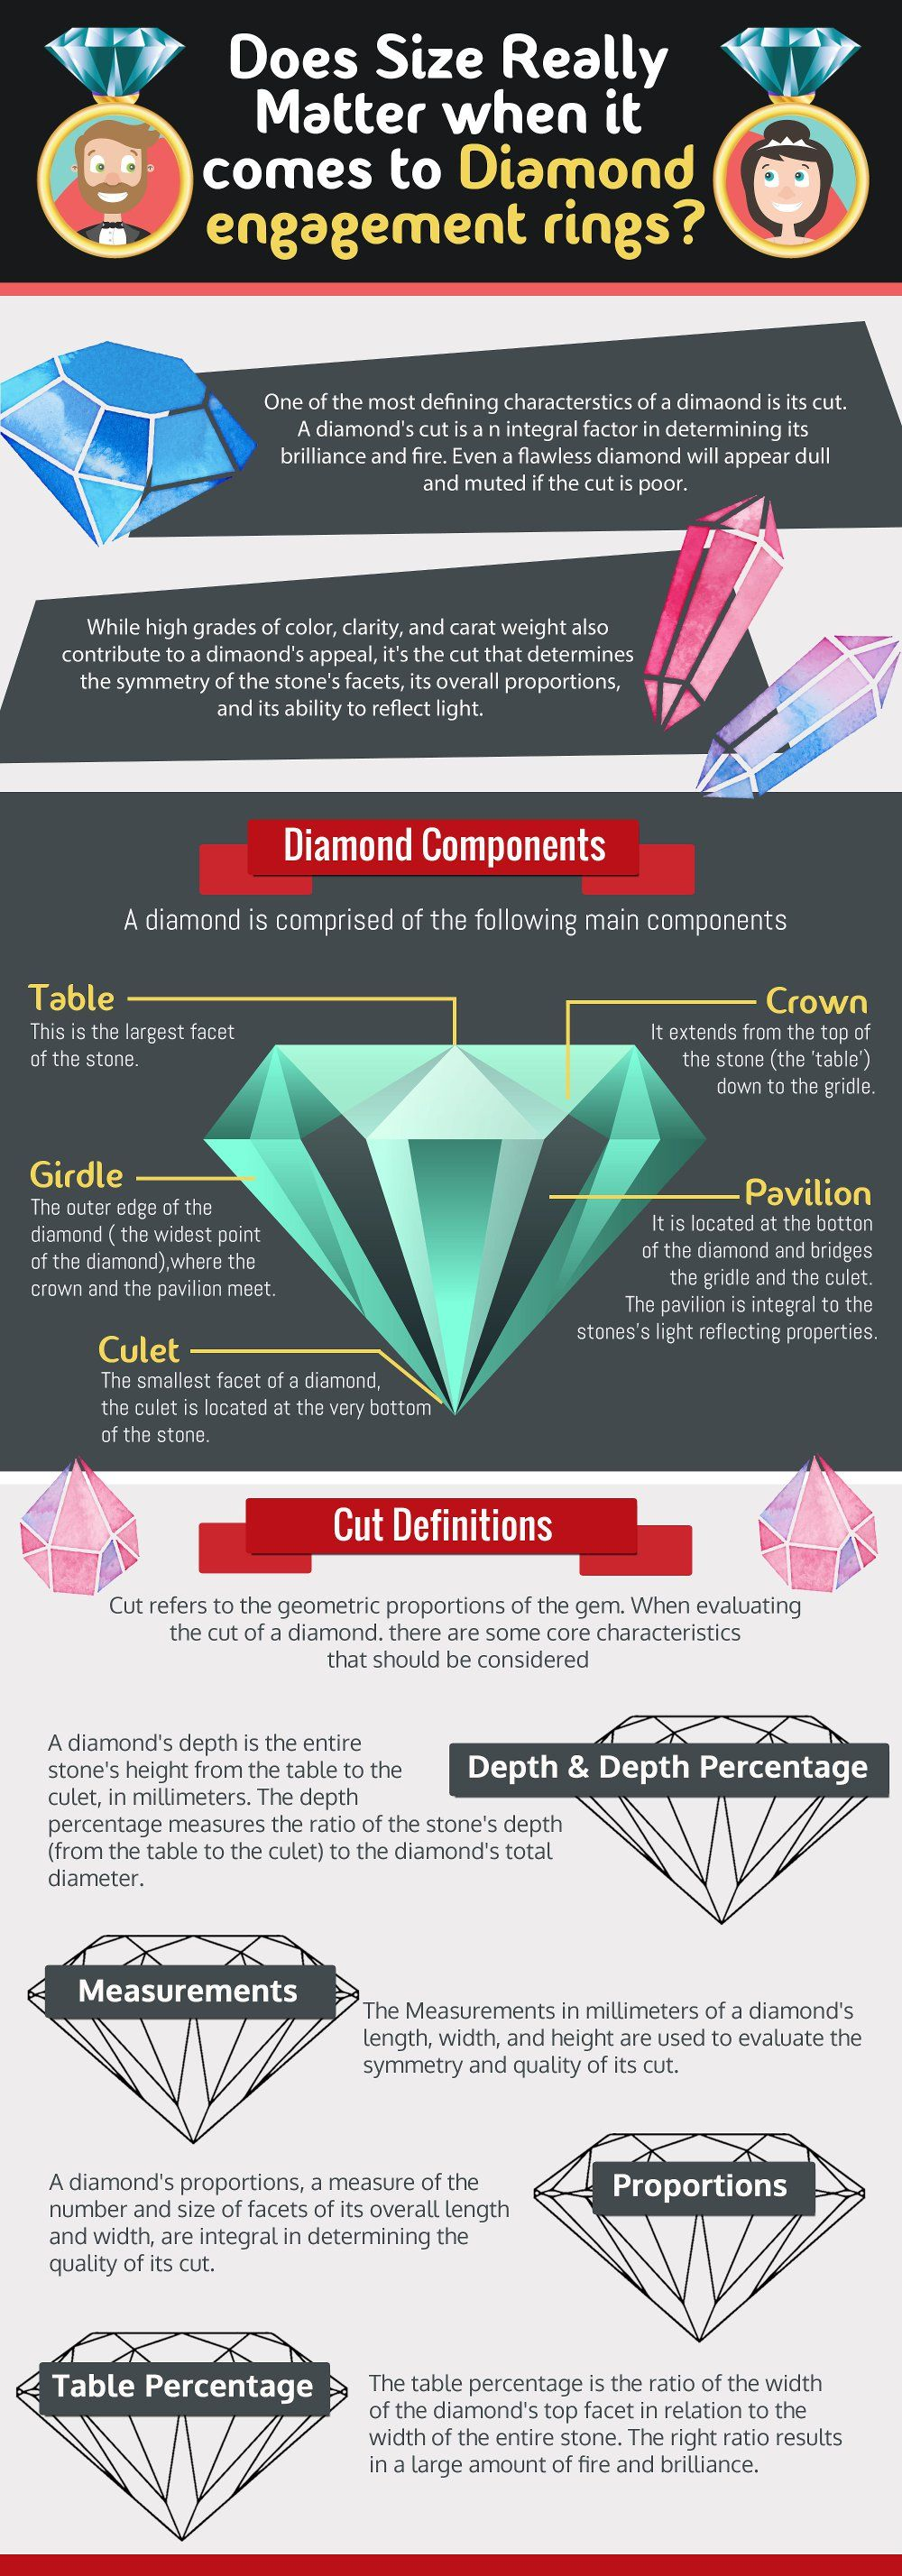 Does size really matter when it comes to Diamond engagement rings?